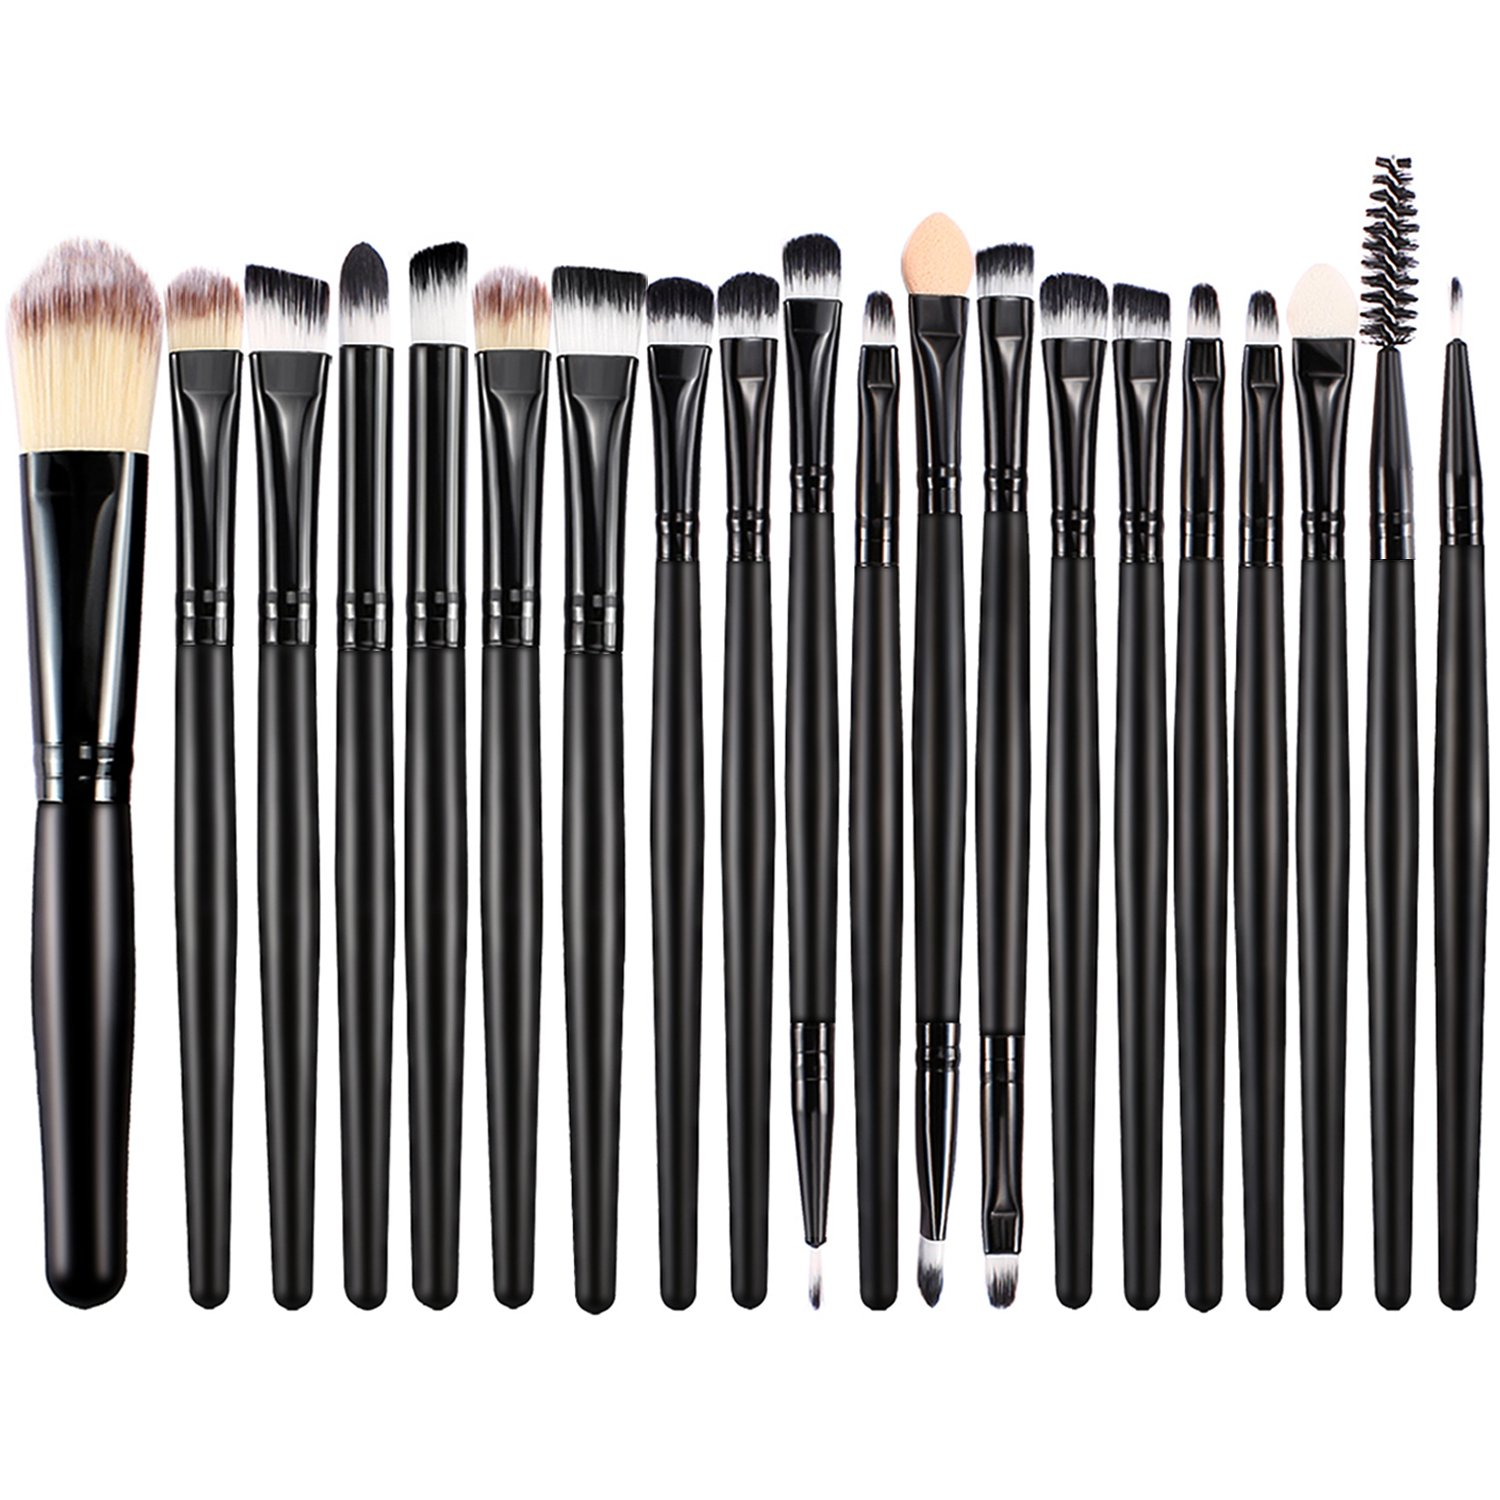 BESTOPE Pinceaux de Maquillage Kit de 20 Pièces Set de Pinceaux Yeux et Visage Brosse Cosmétique Professionnel de Pinceau Poudre,à Sourcil, Outil de Maquillage Mlush,Complete Eye Set Angle Eye Shadow Brush Goupillon Palette de Maquillage